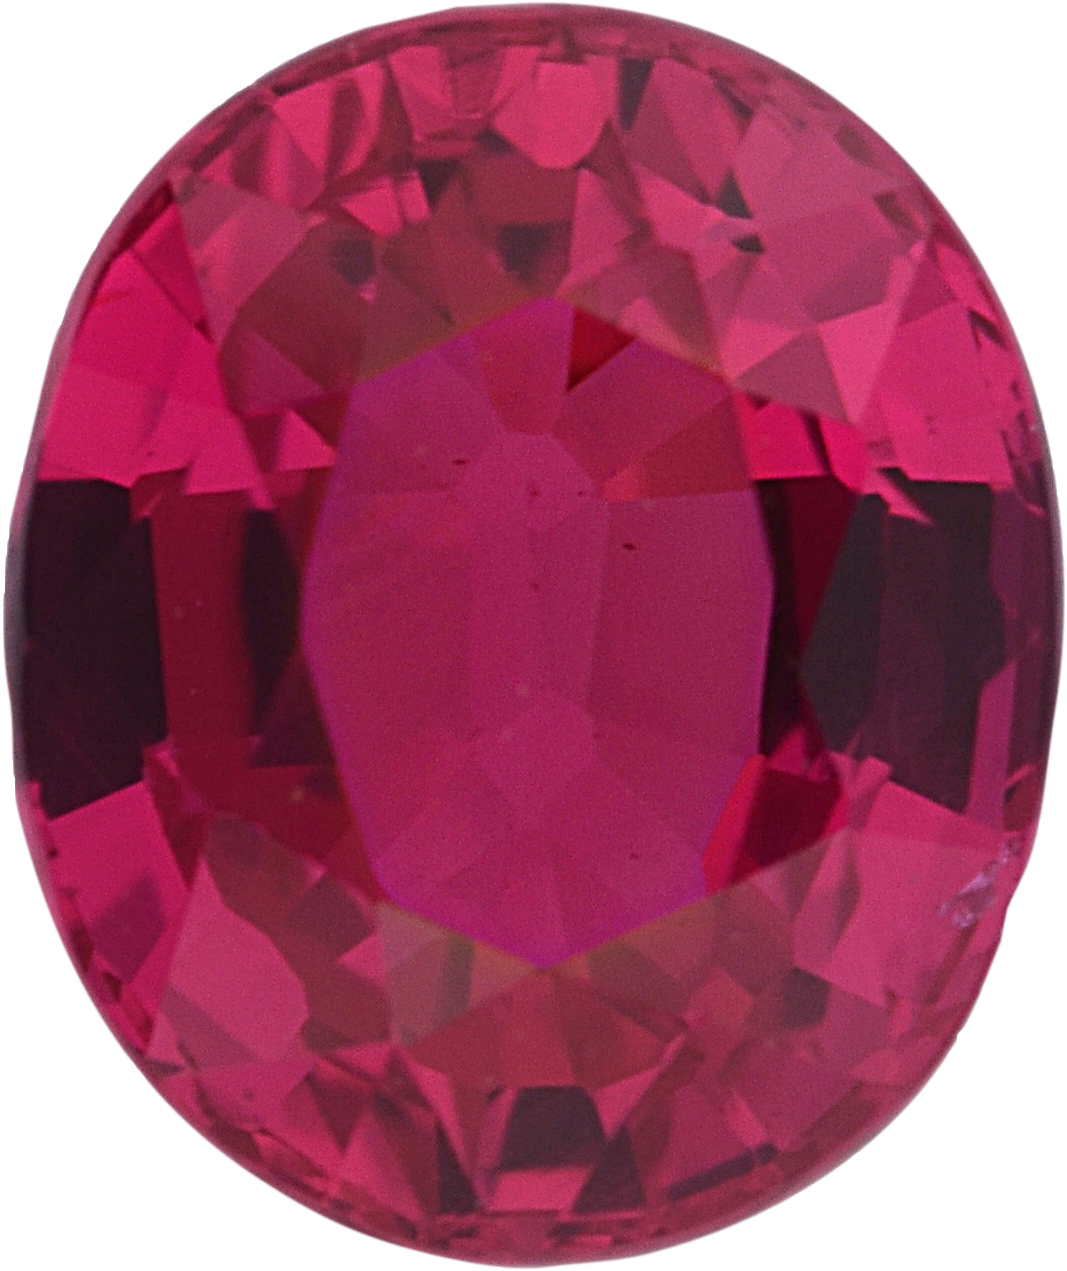 Excellent Value  Untreated Ruby Loose Gem in Oval Cut, Medium Purple Red, 6.34 x 5.33  mm, 1.15 Carats